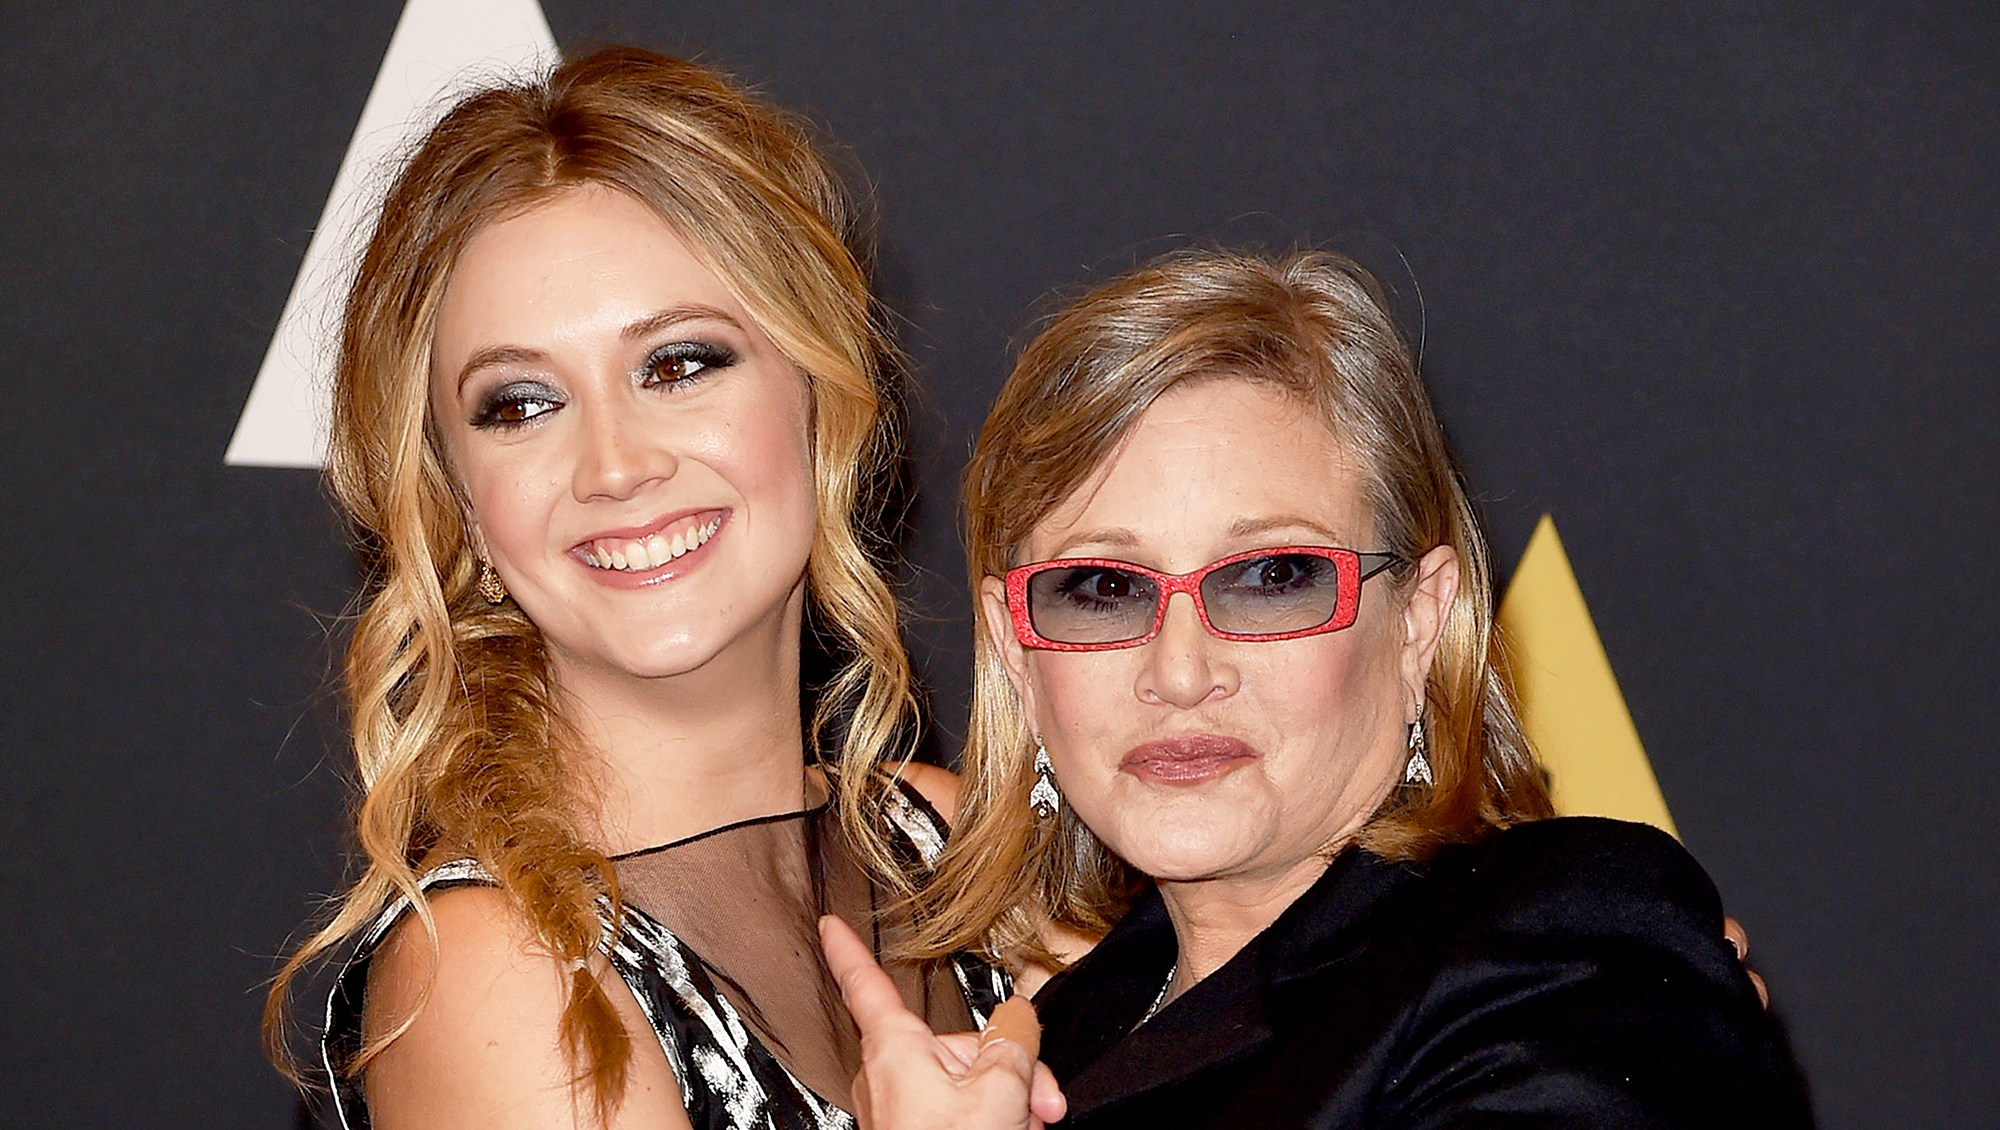 Carrie Fisher and Billie Catherine Lourd attend the Academy of Motion Picture Arts and Sciences' 7th annual Governors Awards at The Ray Dolby Ballroom at Hollywood & Highland Center on November 14, 2015 in Hollywood, California.